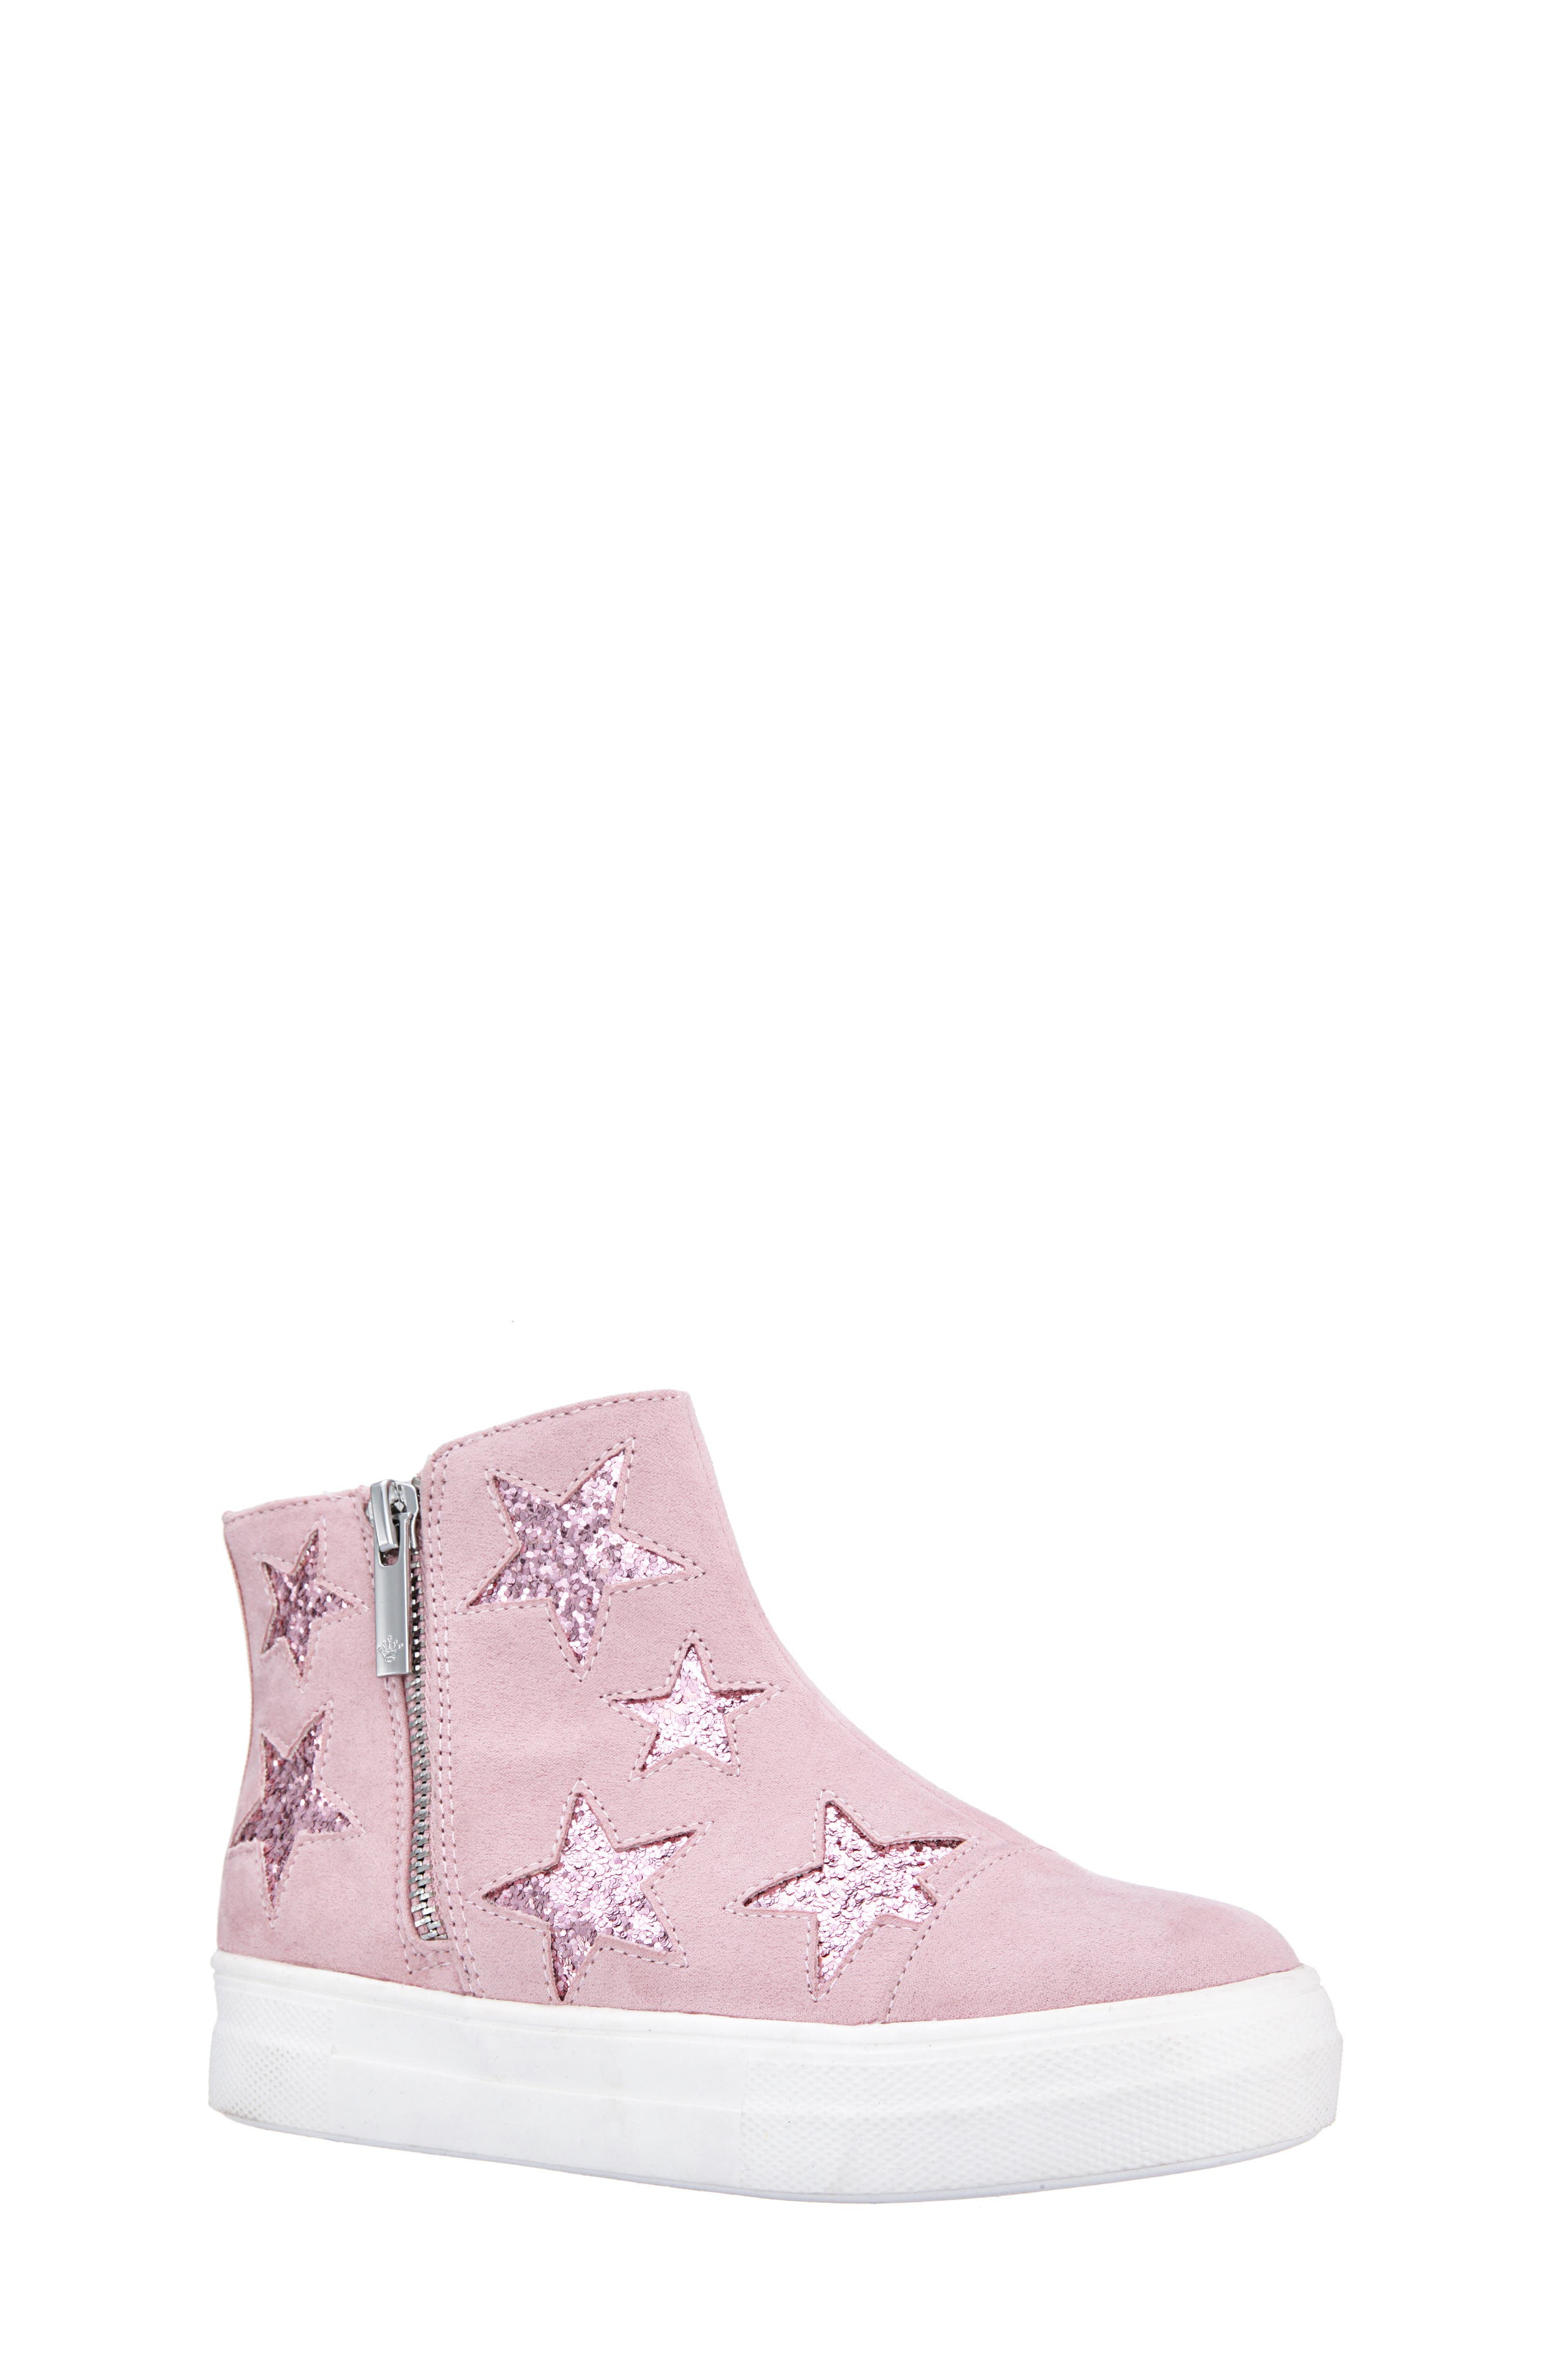 Jacqui Glitter High Top Sneaker,                         Main,                         color, BLUSH MICRO SUEDE